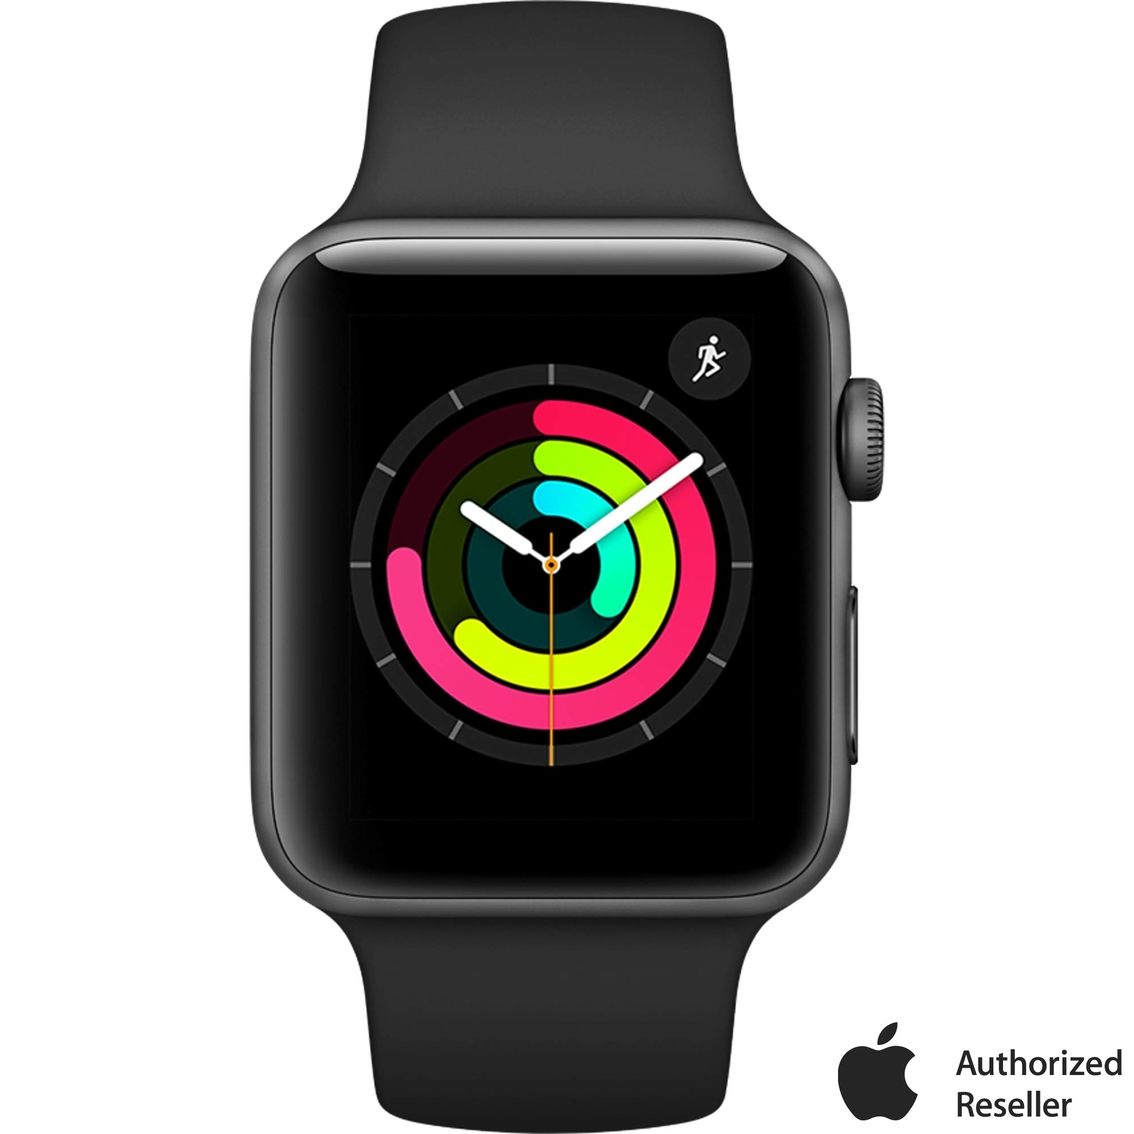 718bc5bf6 Apple Watch Series 3 GPS Space Gray Aluminum Case with Black Sport Band